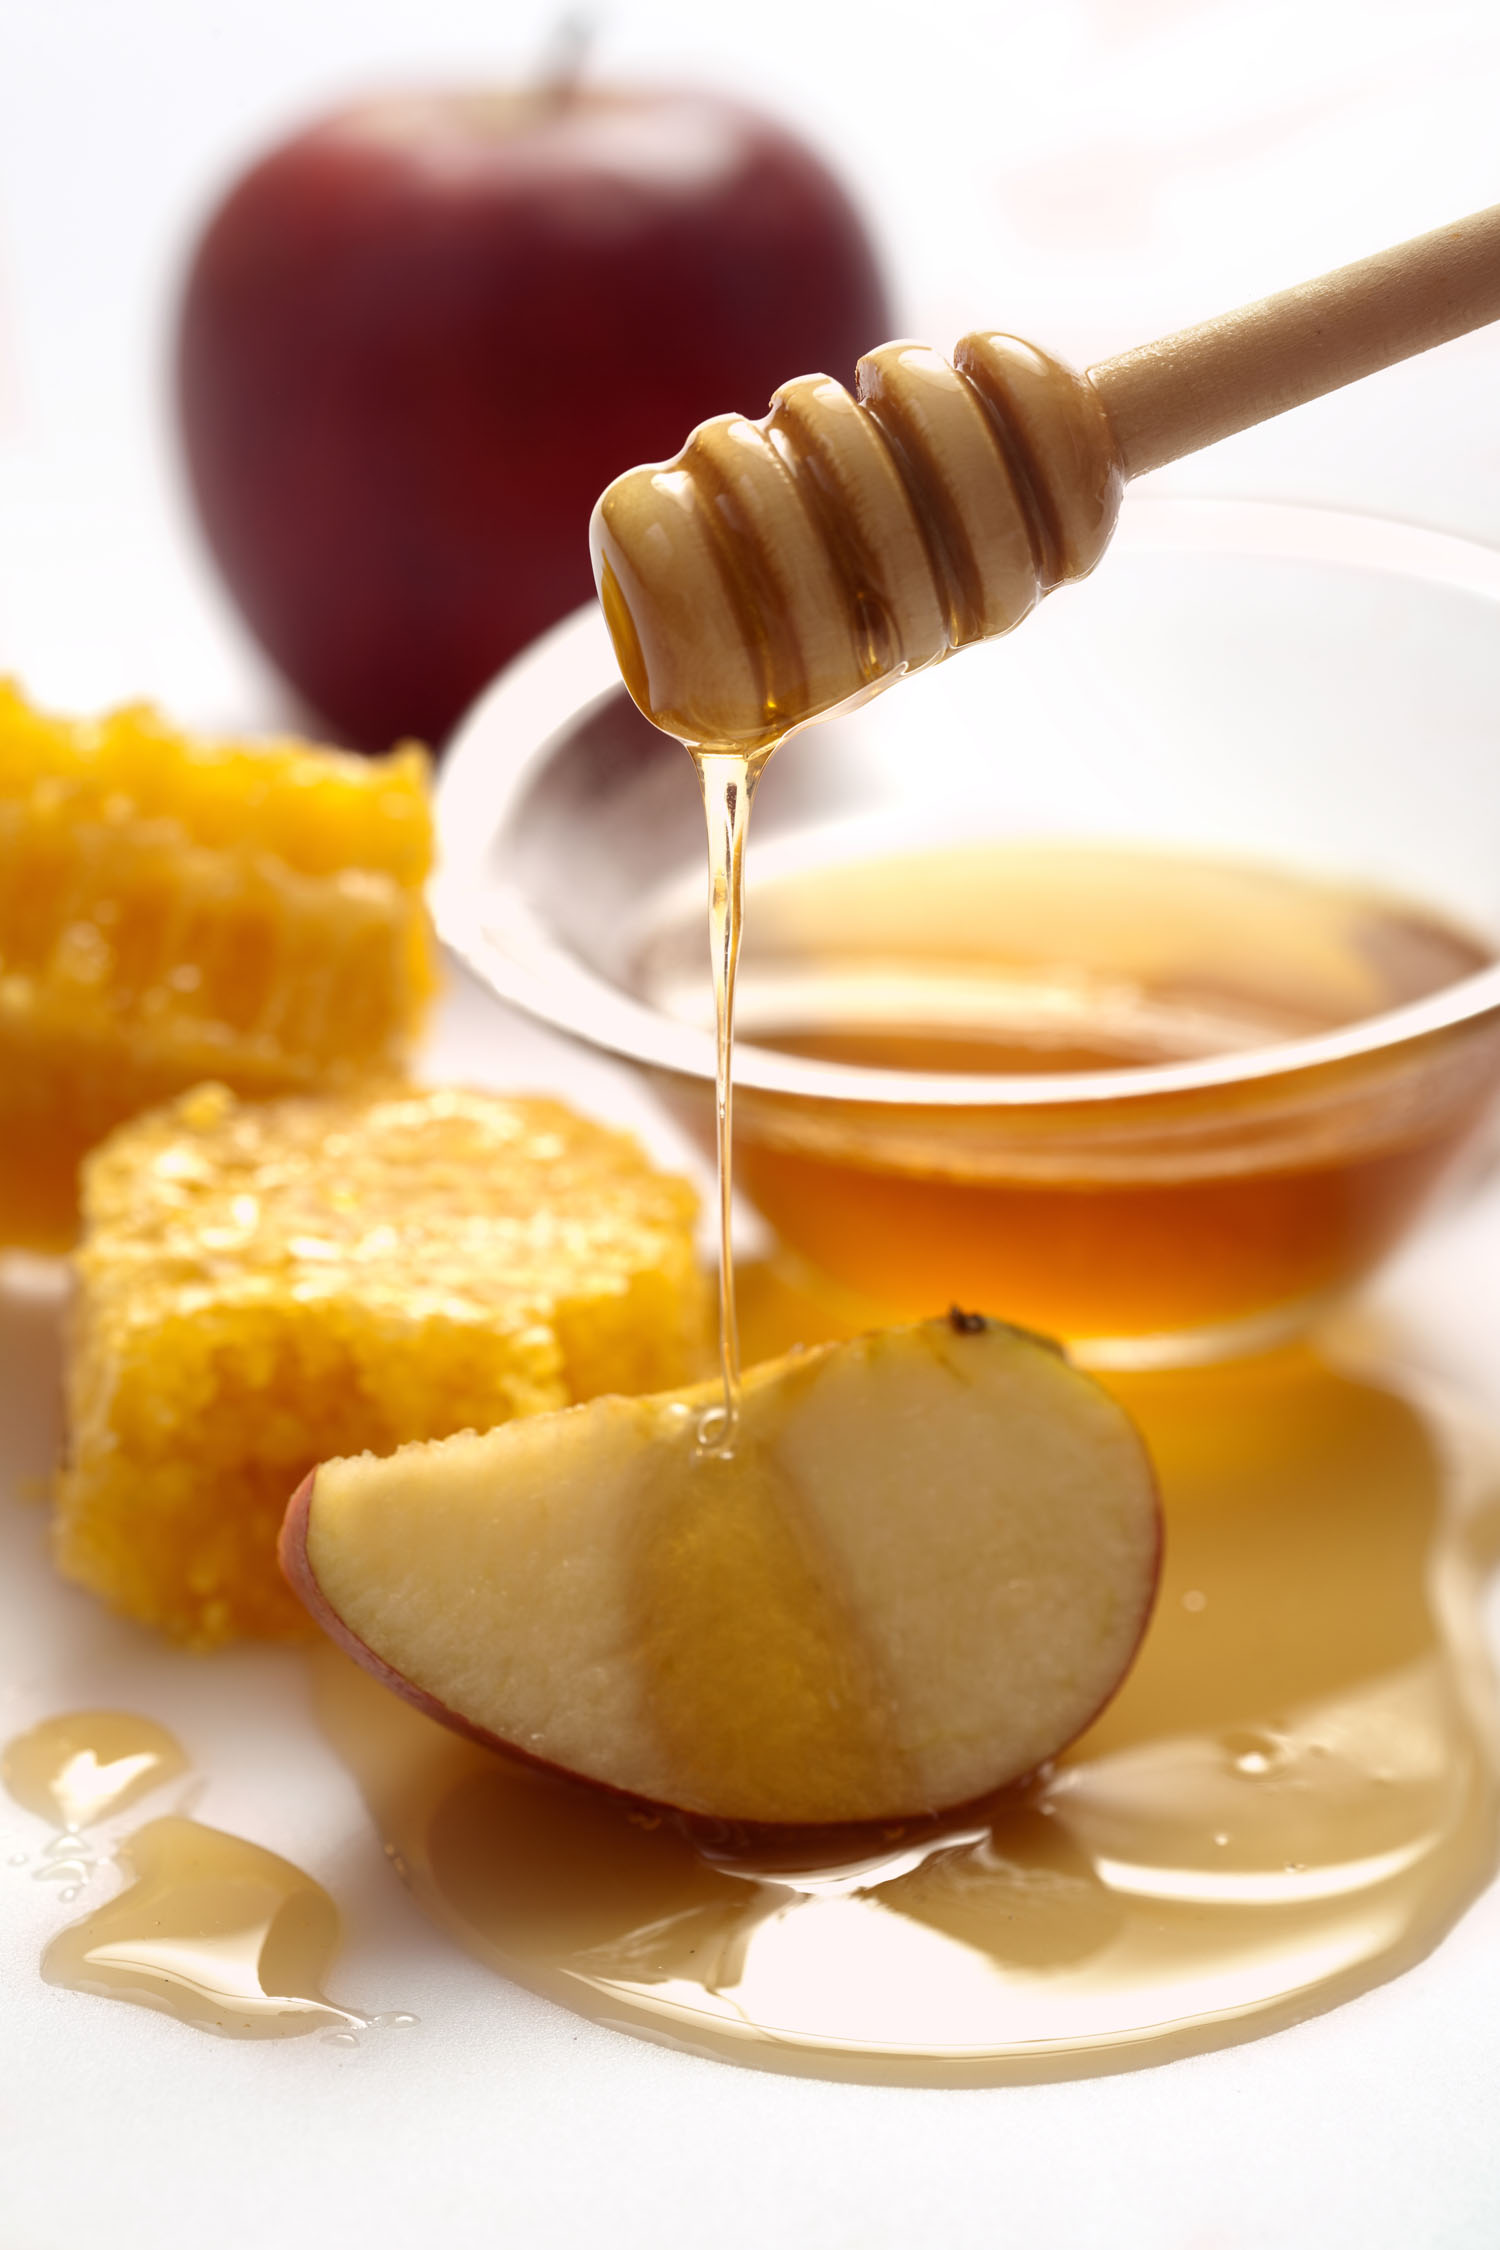 Apples dipped in honey